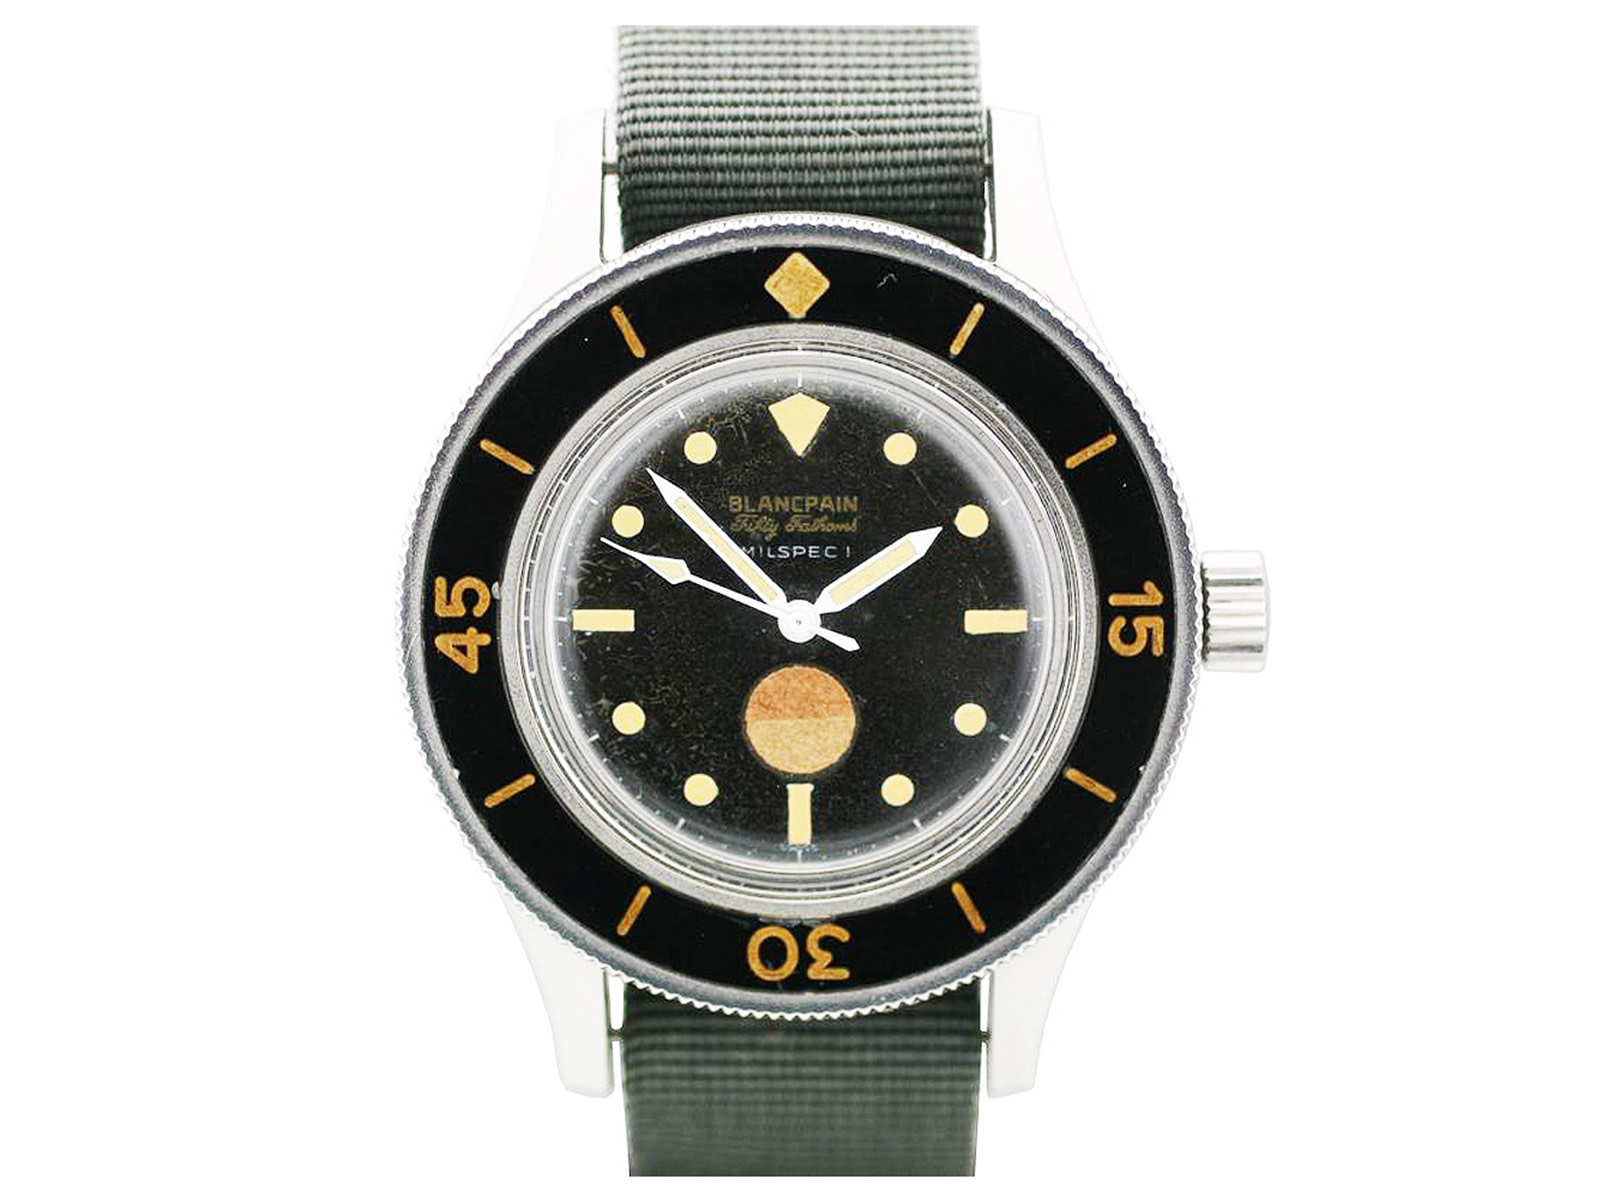 blancpain-fifty-fathoms-us-navy-milspec-.jpg